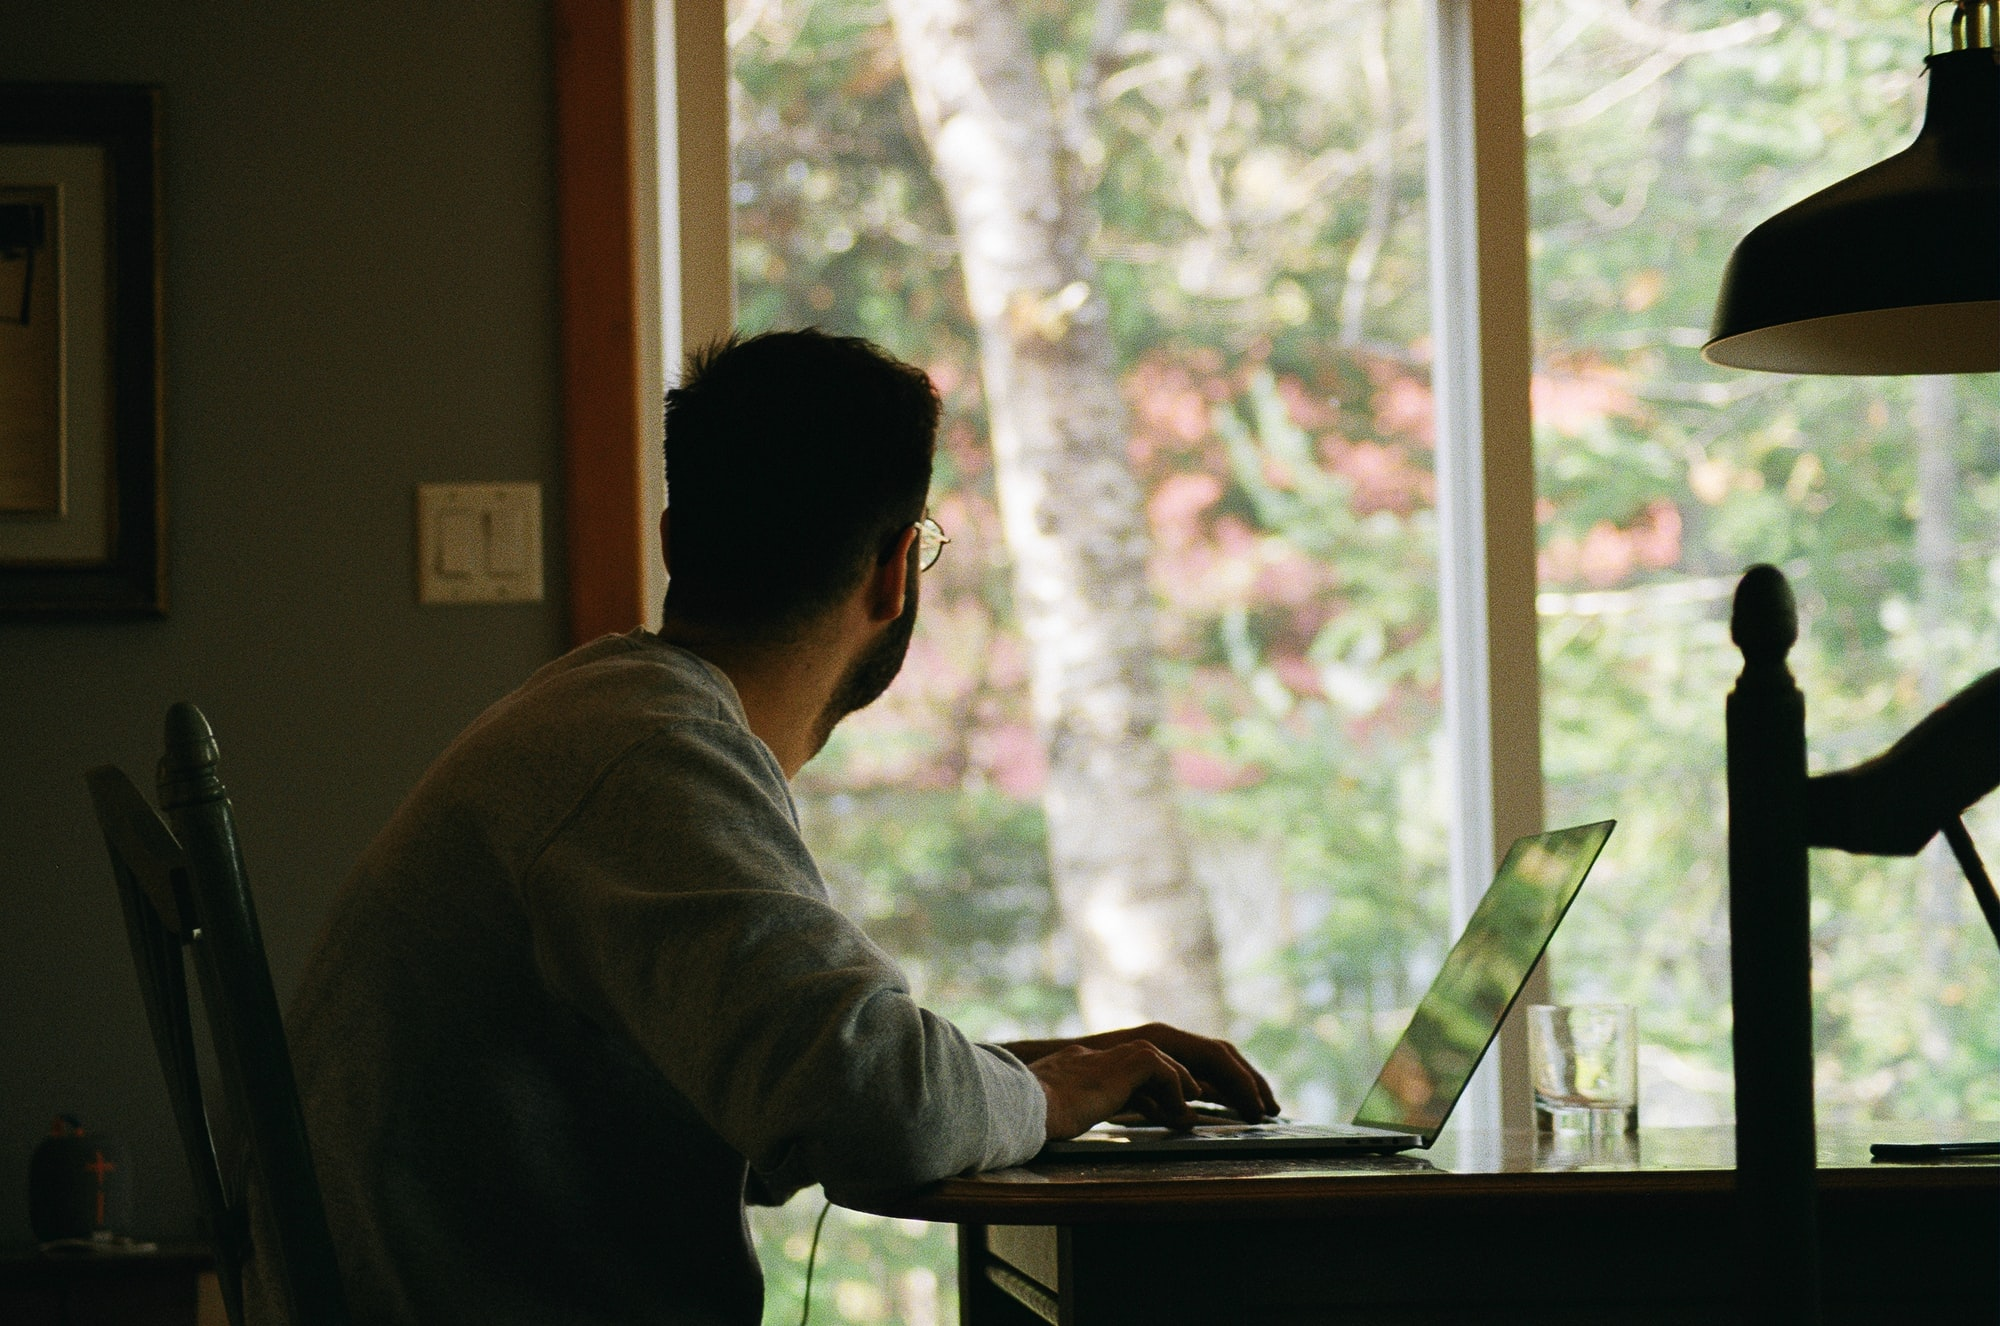 I became aware of the personal productivity movement nearly a decade ago, and have been learning it seriously and honing my craft in it for around the